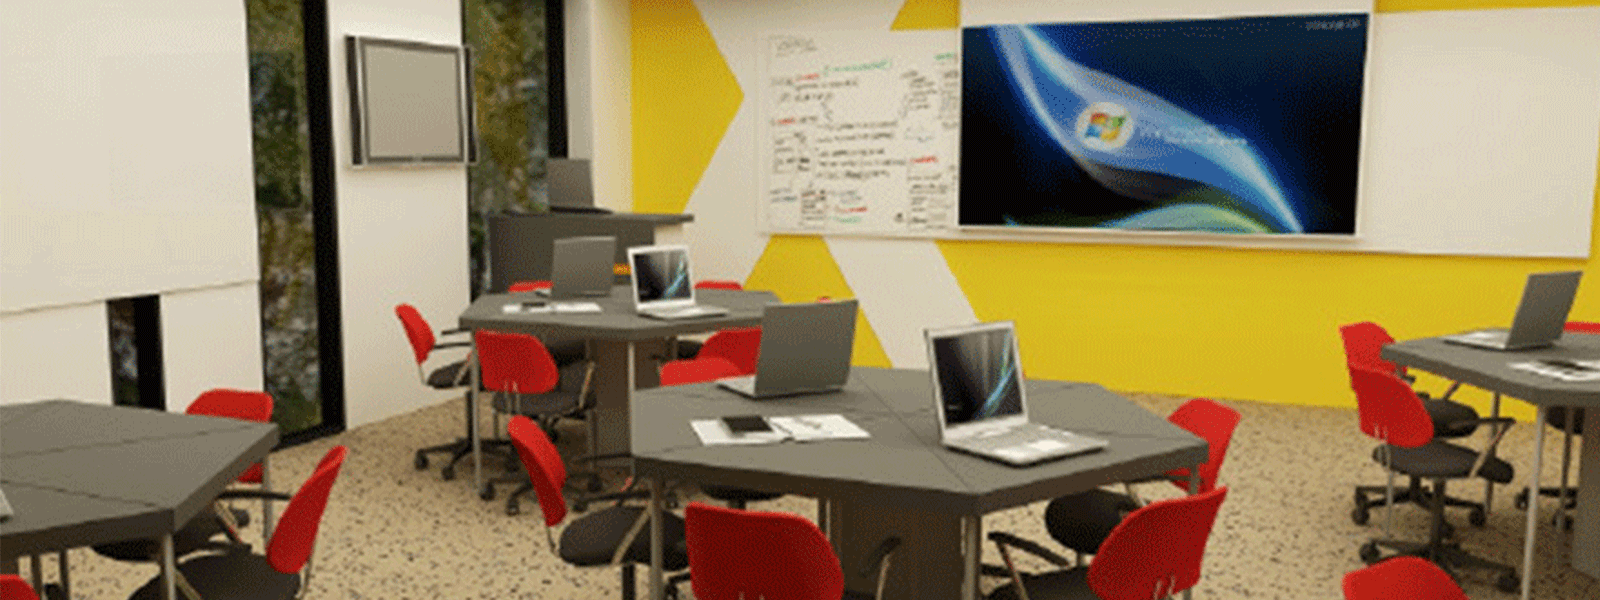 collaborative-spaces-bottom-updated